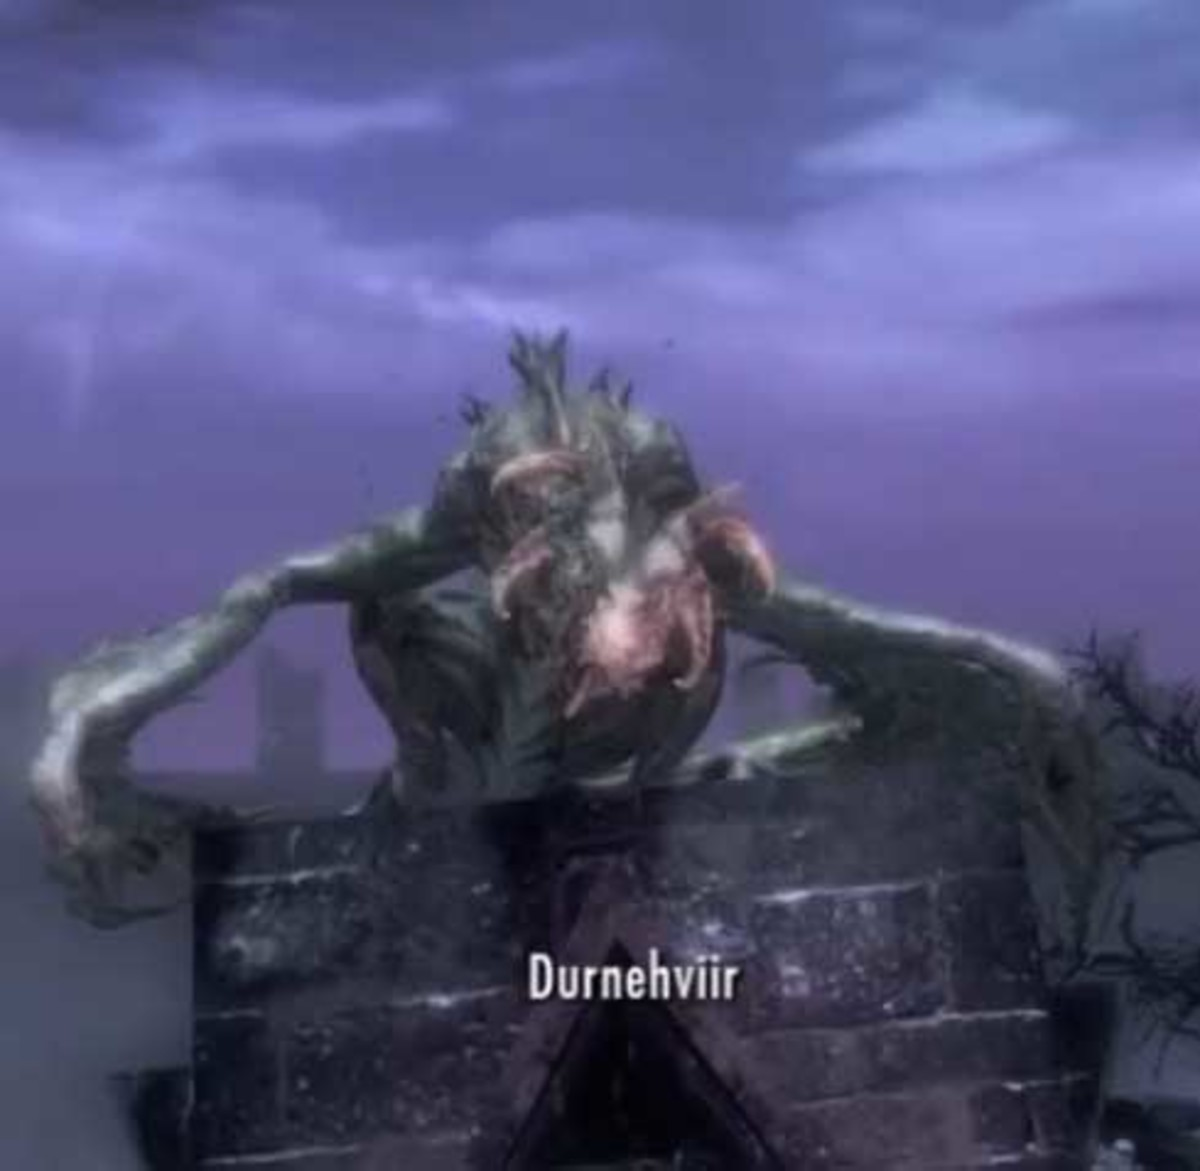 Skyrim learn the Dragon Shout from Durnehviir after defeating him.